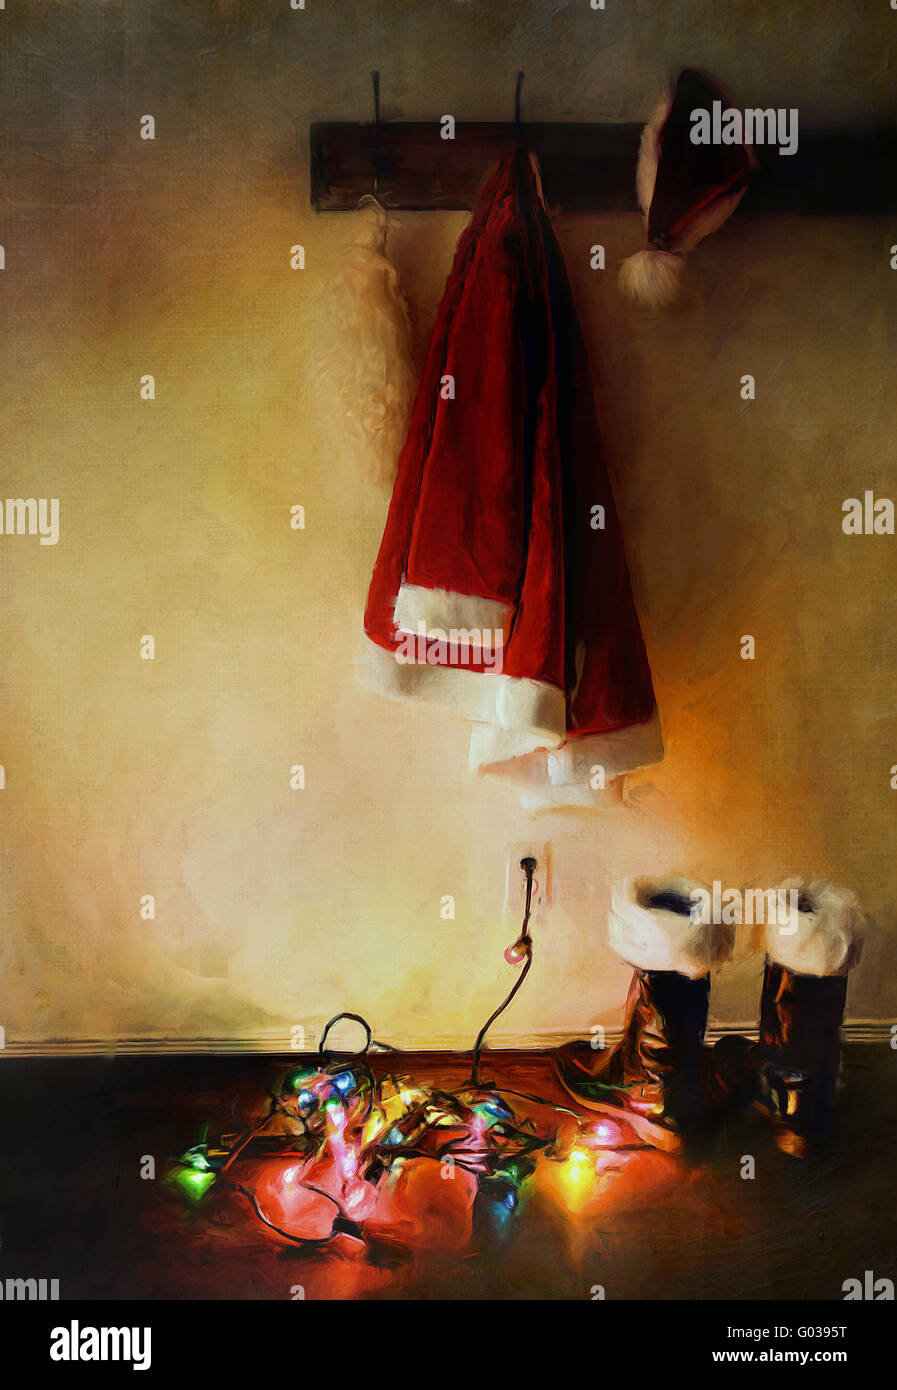 Digital painting of santa costume with lights - Stock Image